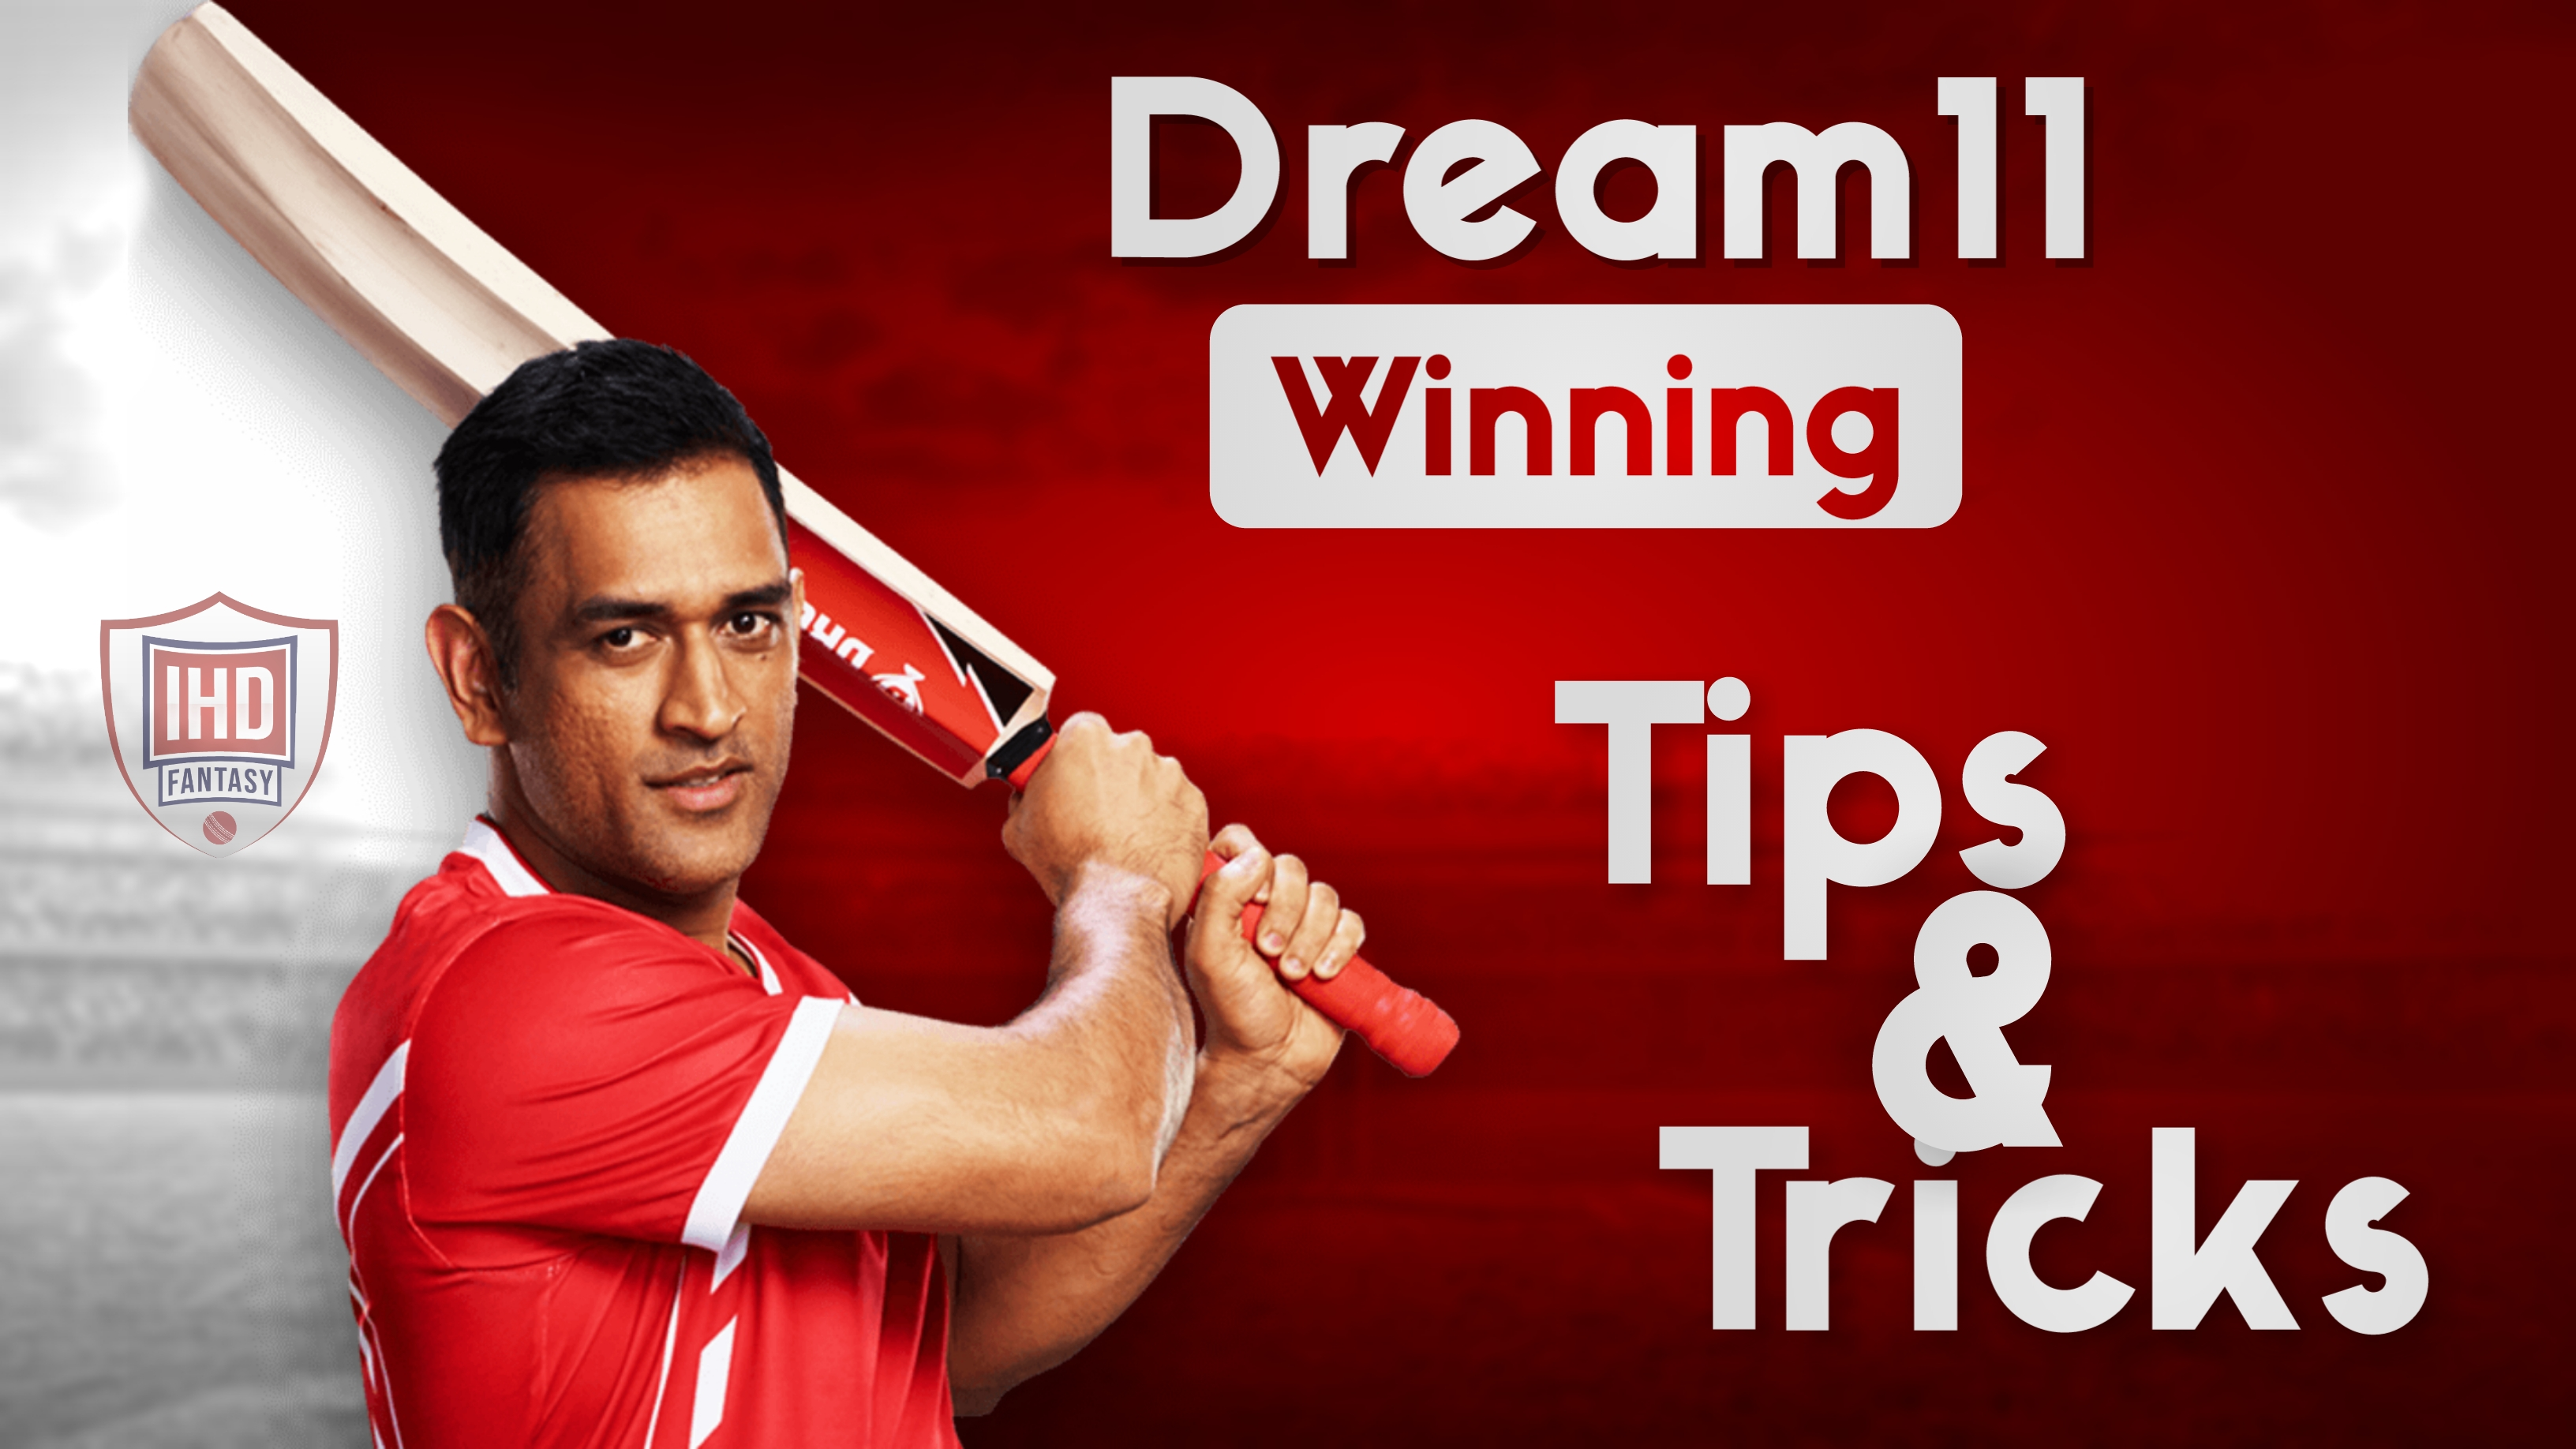 (100% Working) Dream11 Tips & Trick To Win Confirmed Grand Leagues!